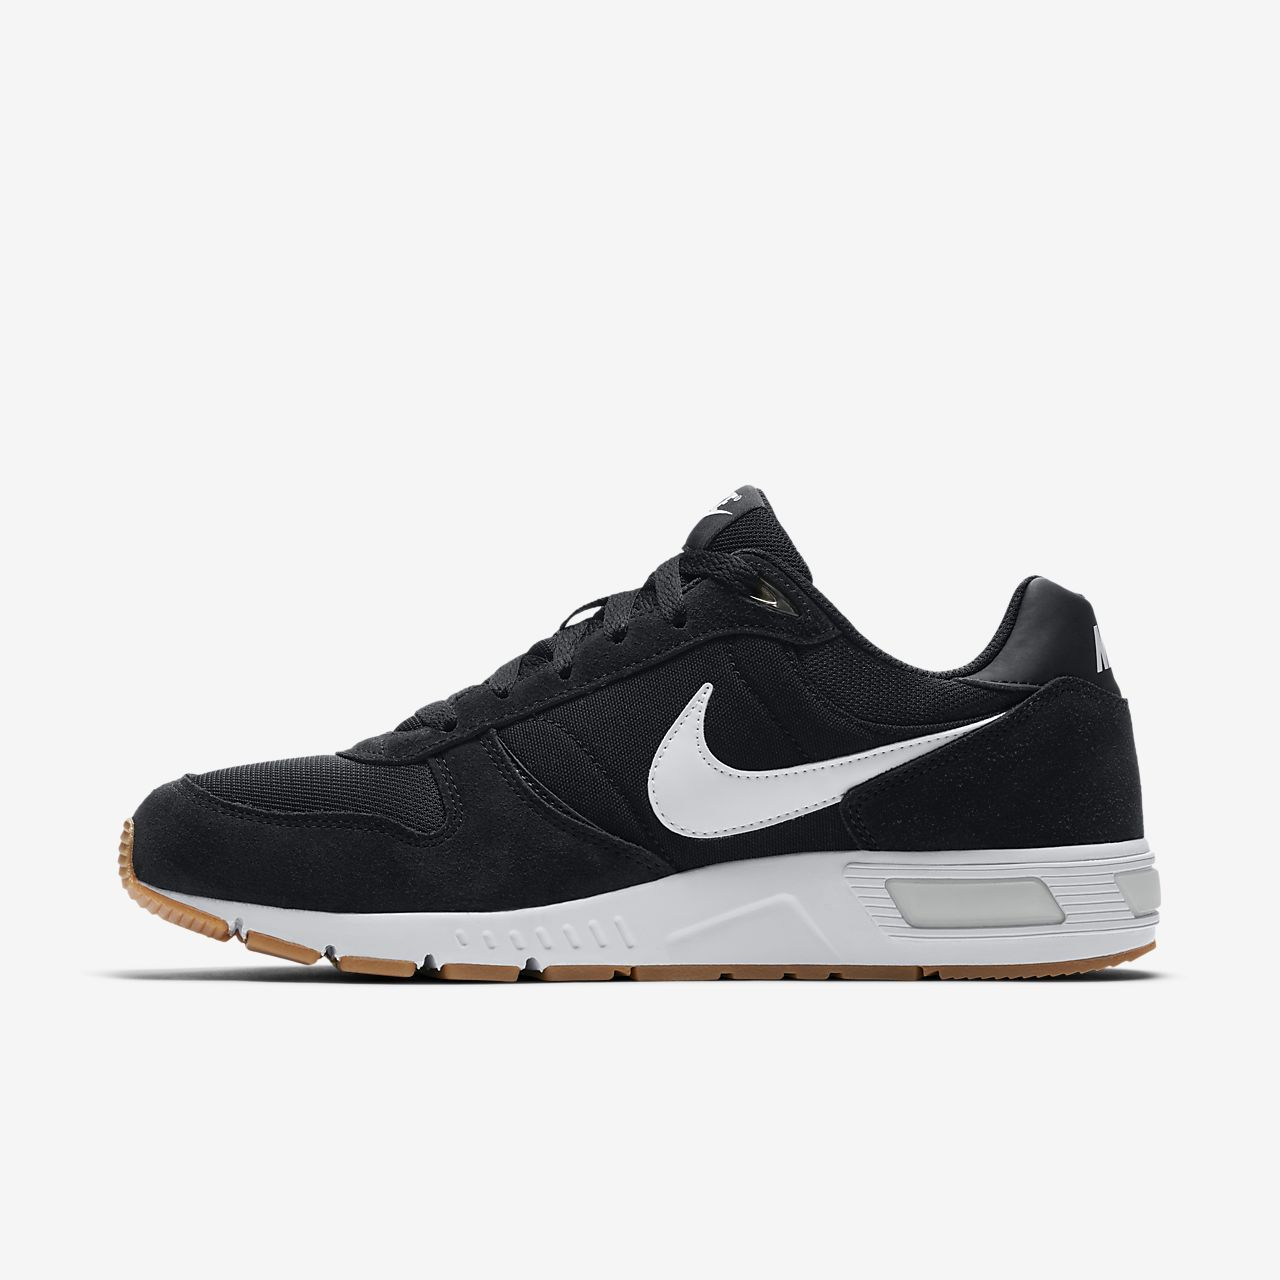 buy online e3e60 1a1fb Low Resolution Nike Nightgazer schoen voor heren Nike Nightgazer schoen  voor heren